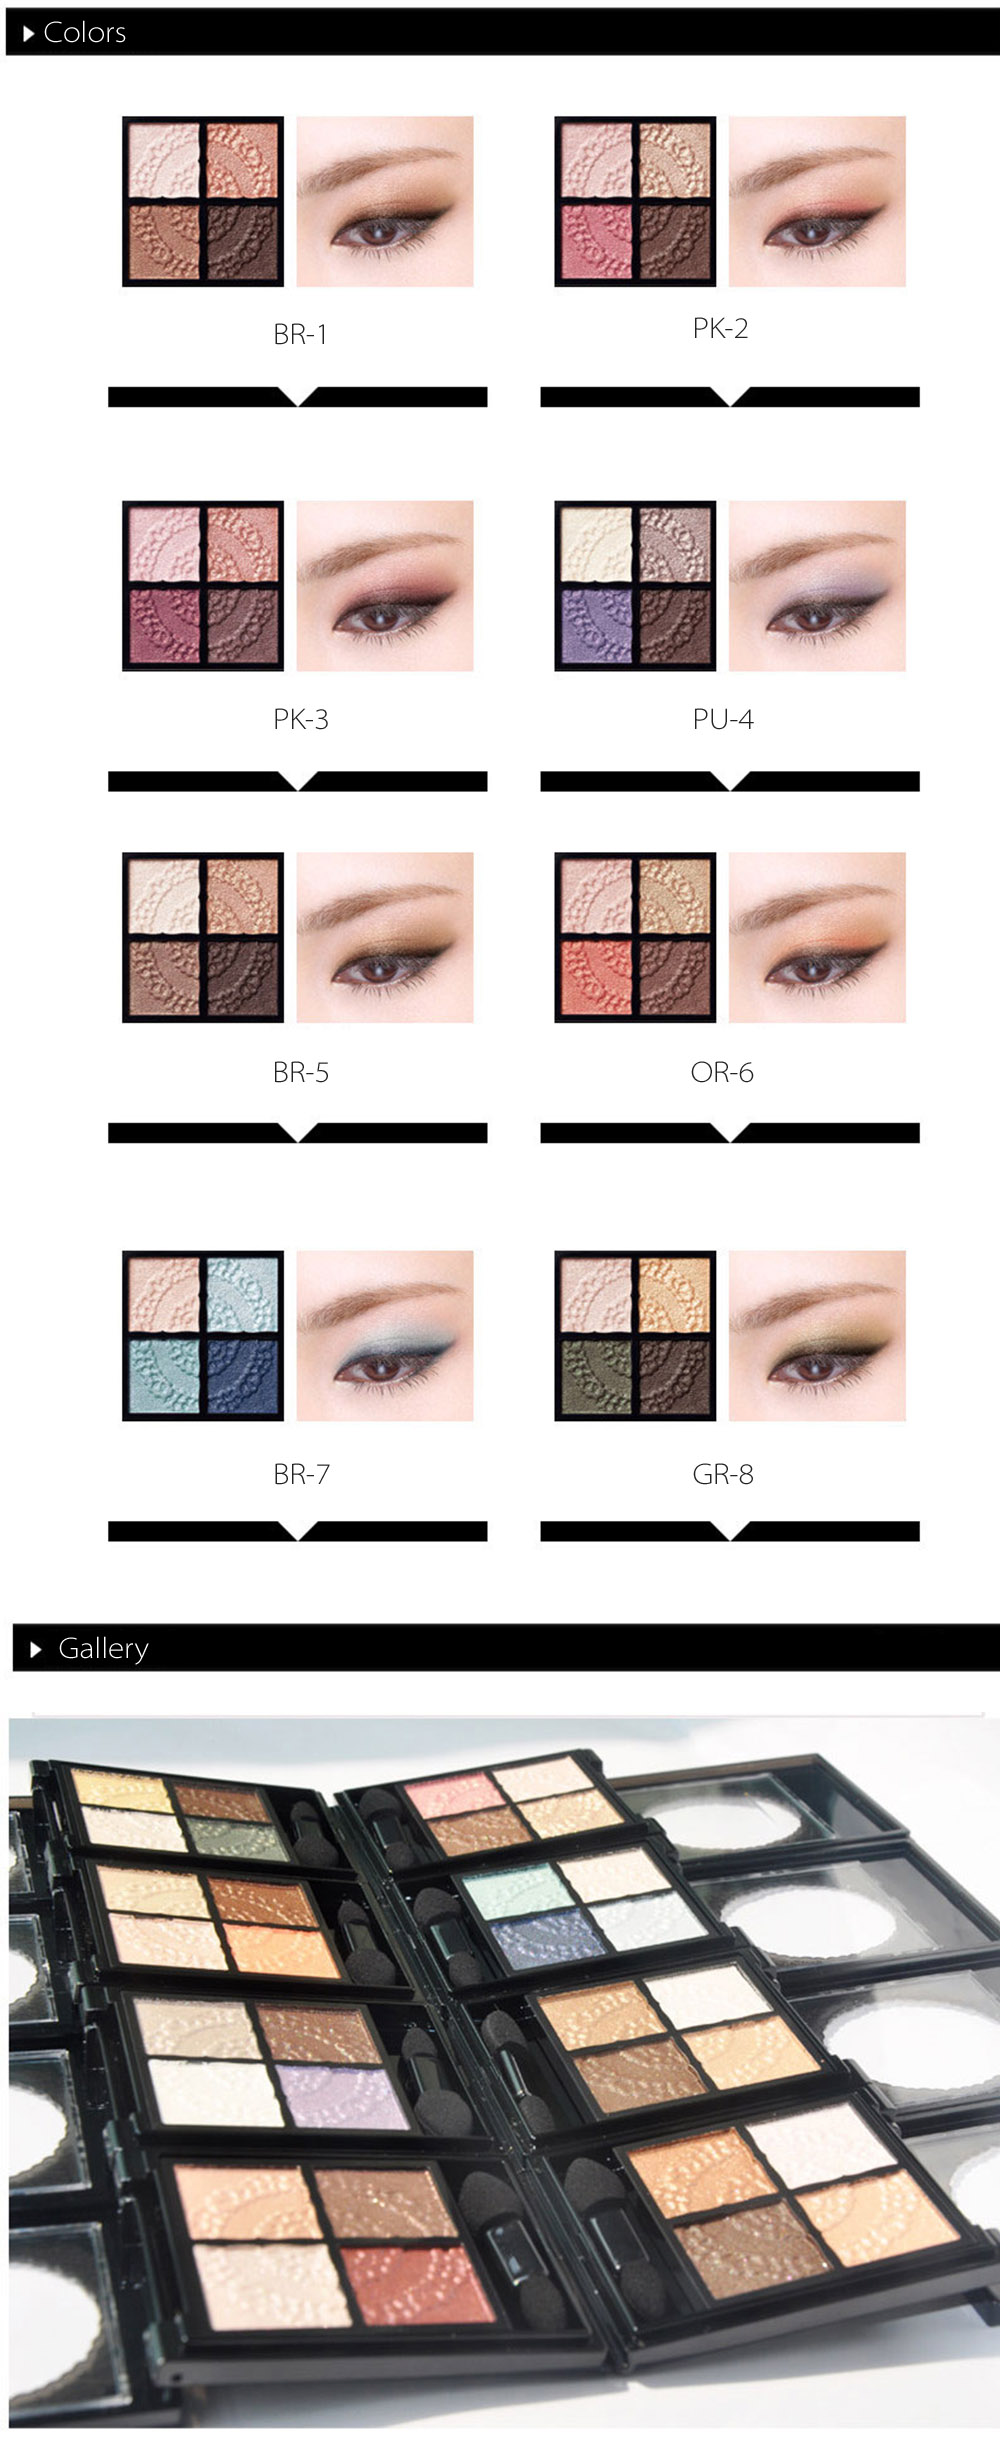 Kose Glossy Rich Eye Shadow Designed for Young Adults